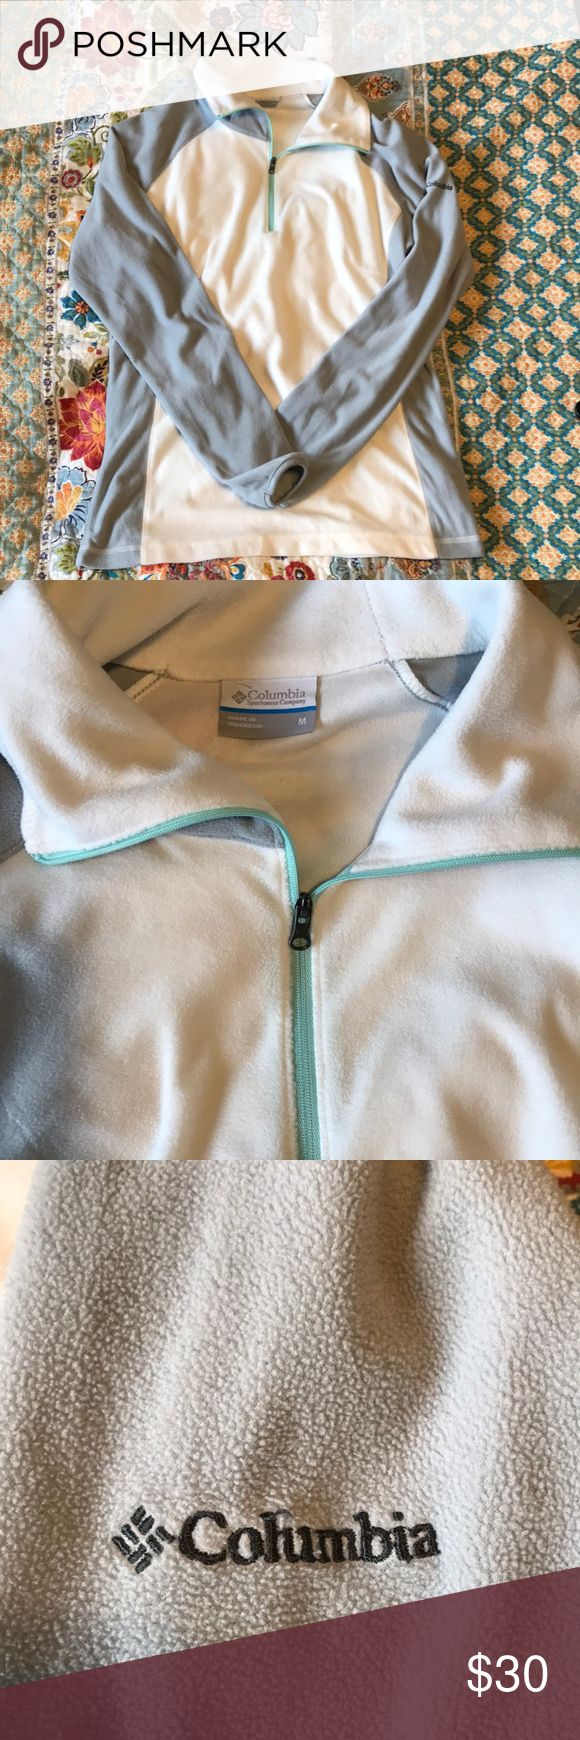 SUPER SOFT- Columbia 1/4 Zip Fleece Pullover NWOT- Womens Columbia quarter zip pullover sweater in white, grey with a Tiffany Blue zipper. No fraying, loose strings or pilling. SO SOFT and cozy! I may just have to keep it for myself! Columbia Tops Sweatshirts & Hoodies